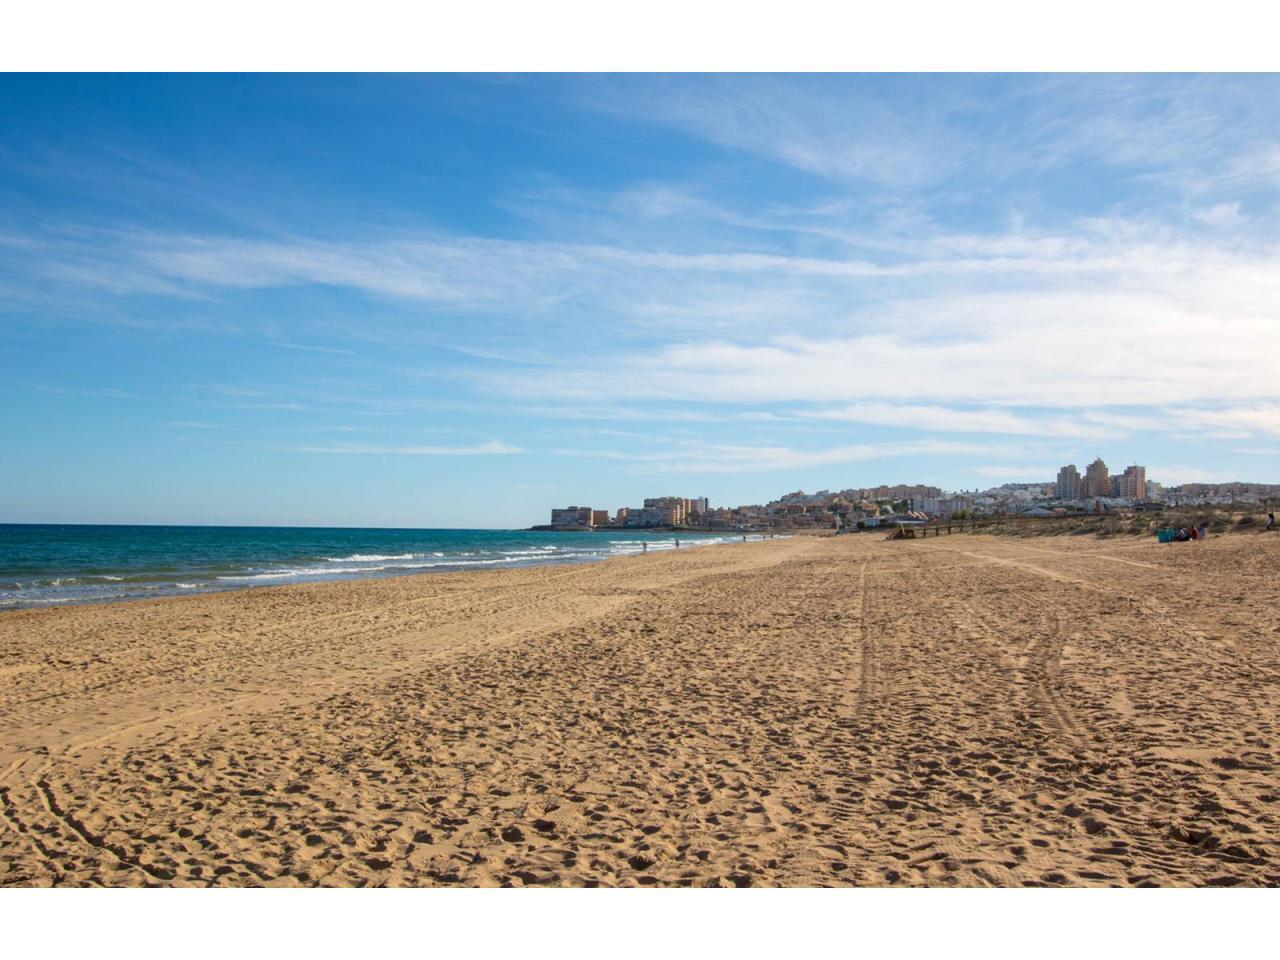 Apartment in Torrevieja, Spain for rent - 11